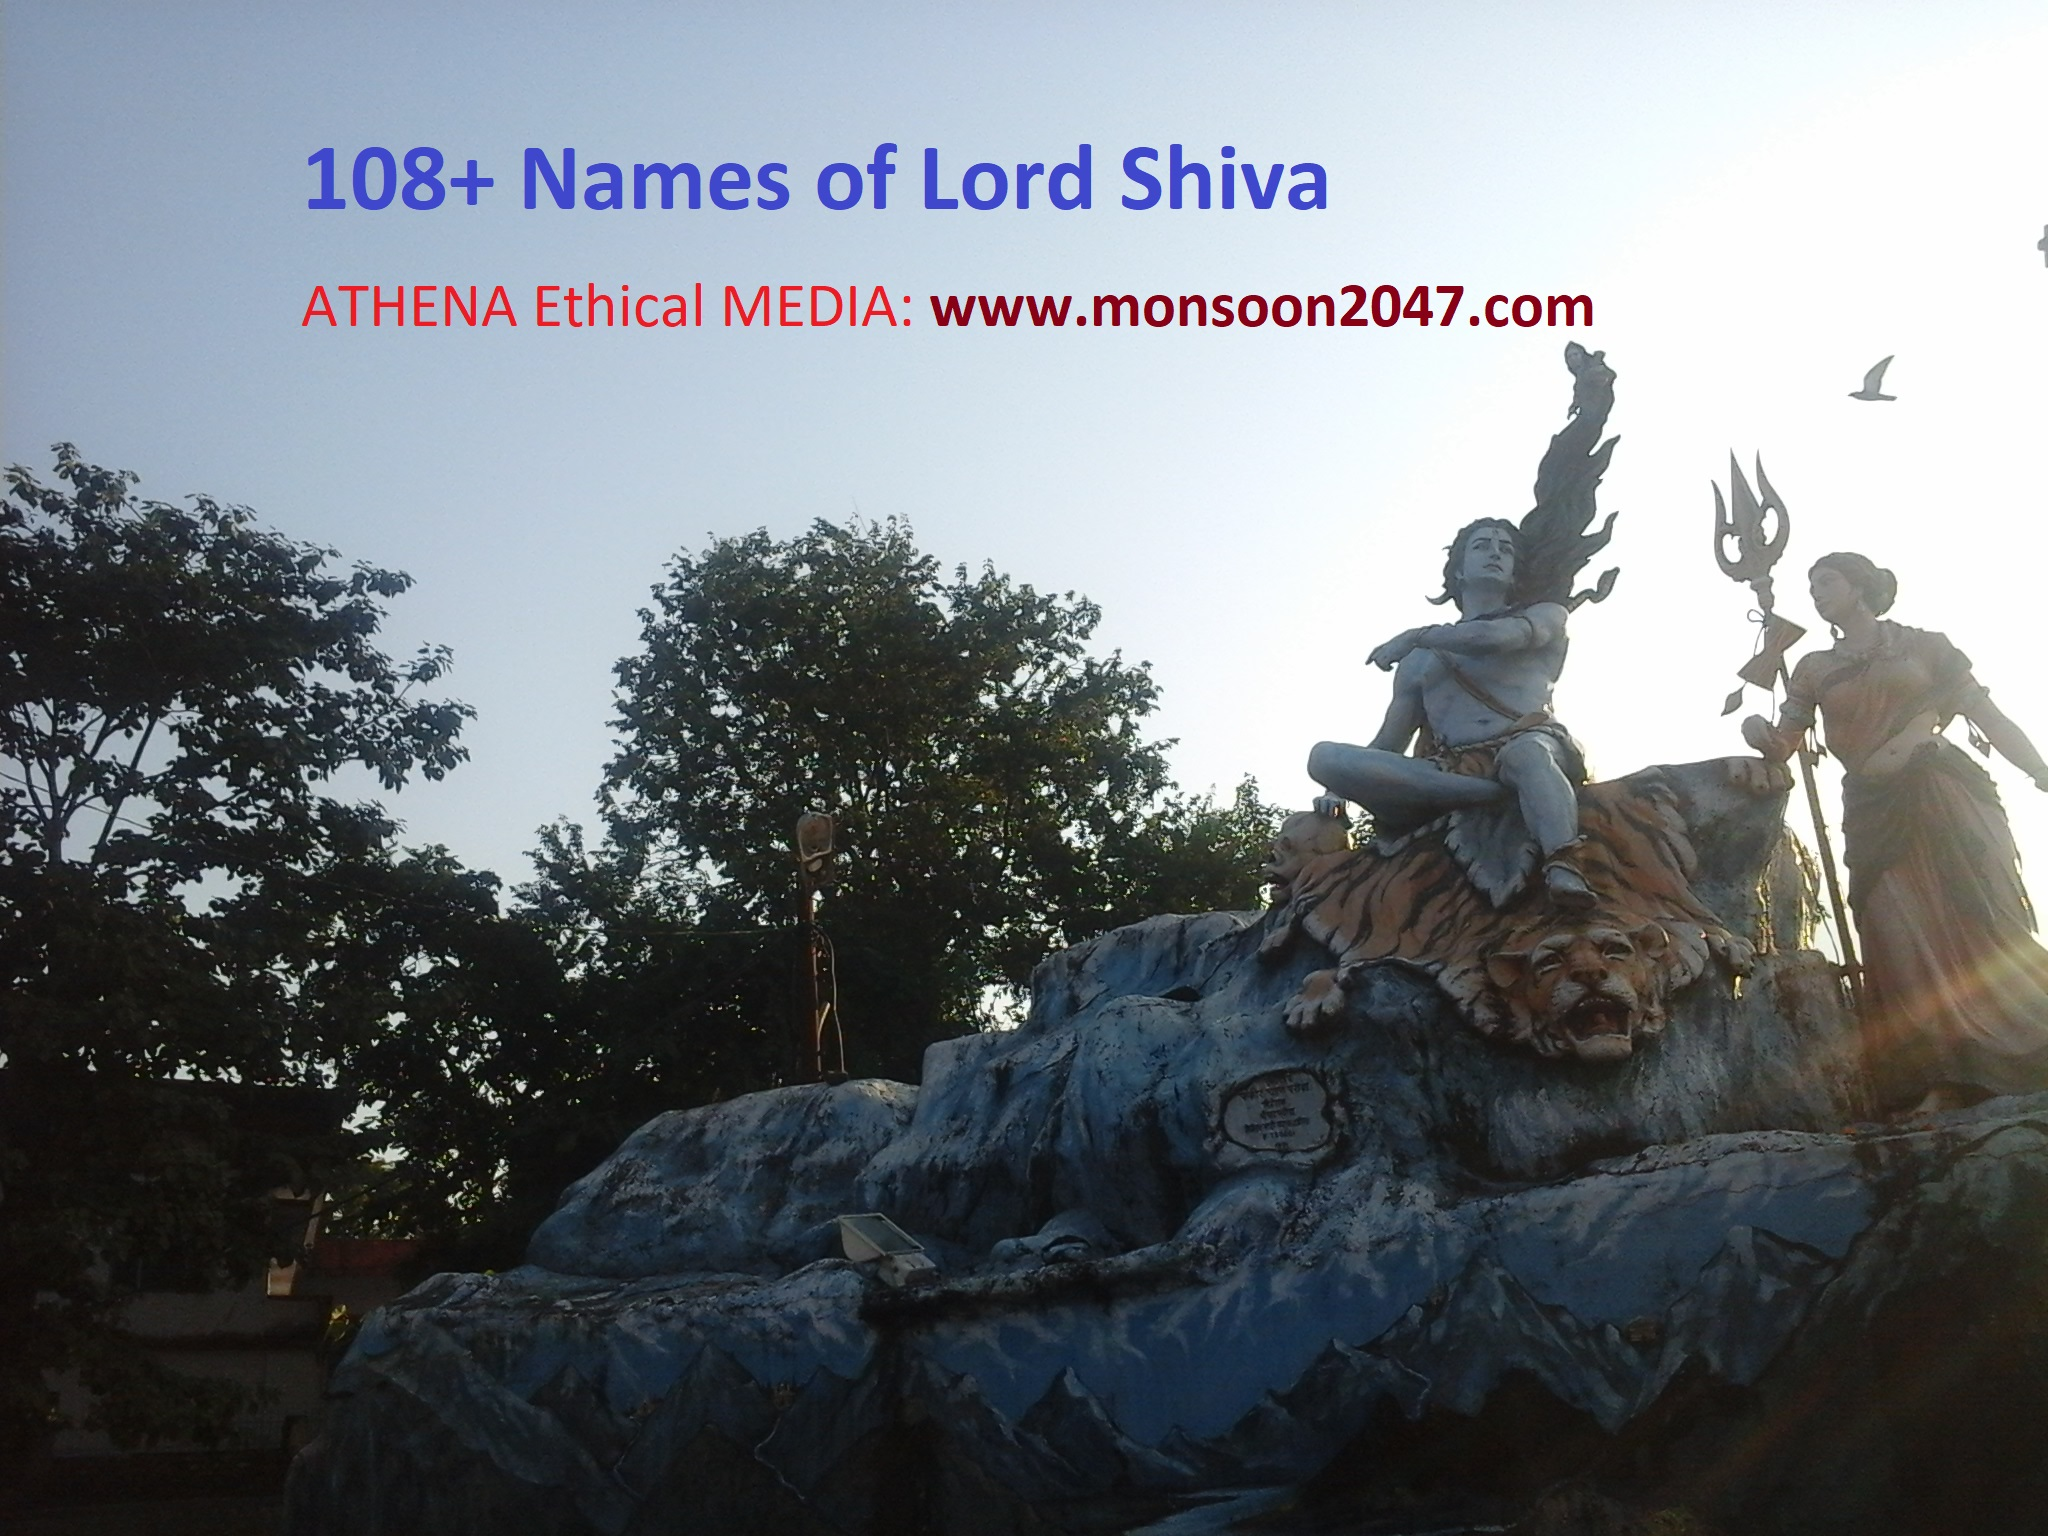 108+ Names of Lord Shiva